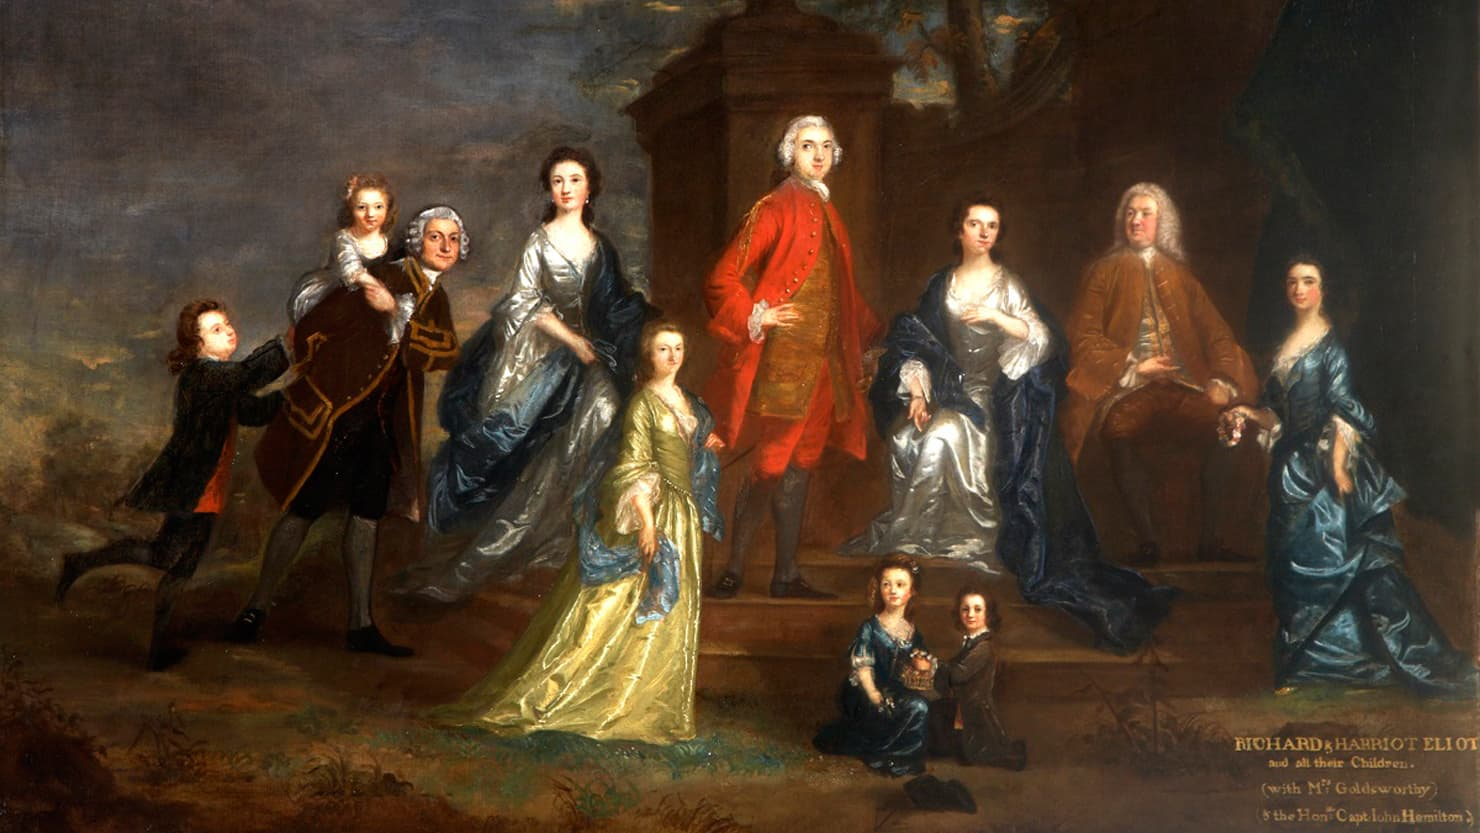 The Box | New exhibition will examine the relationship between Reynolds and the Eliot family